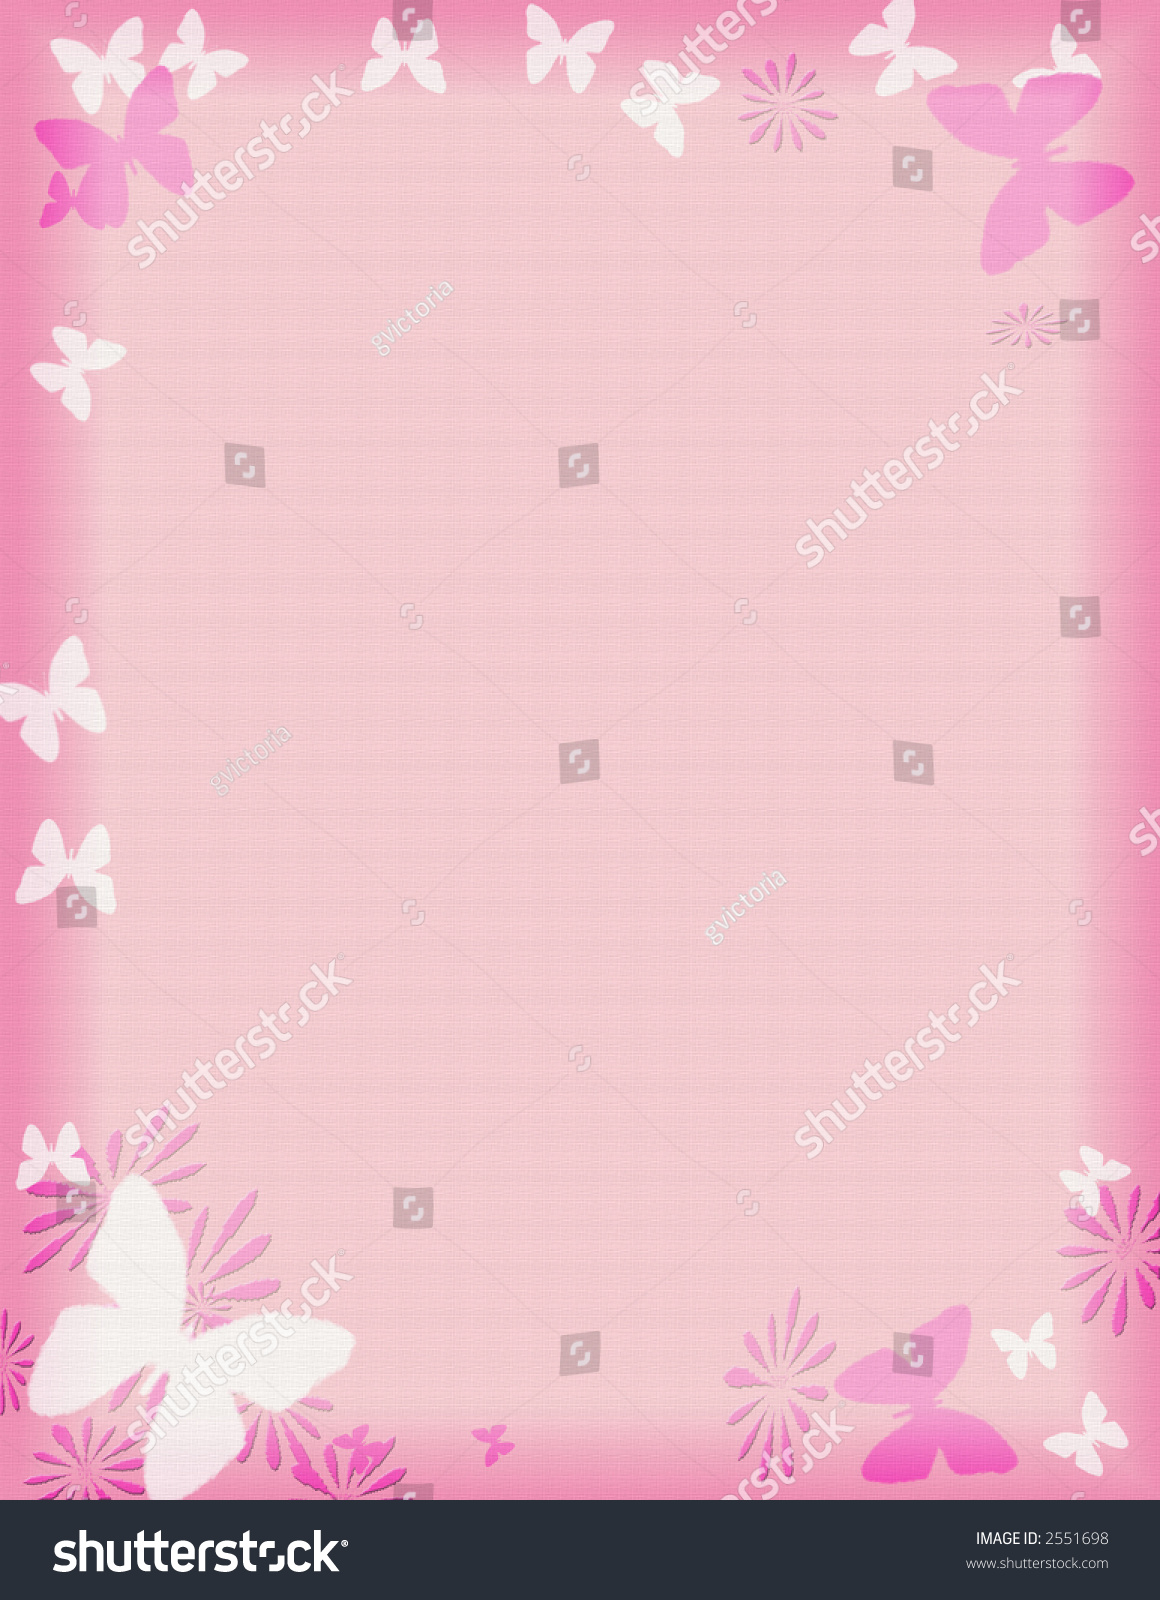 Pink butterfly borders - photo#15